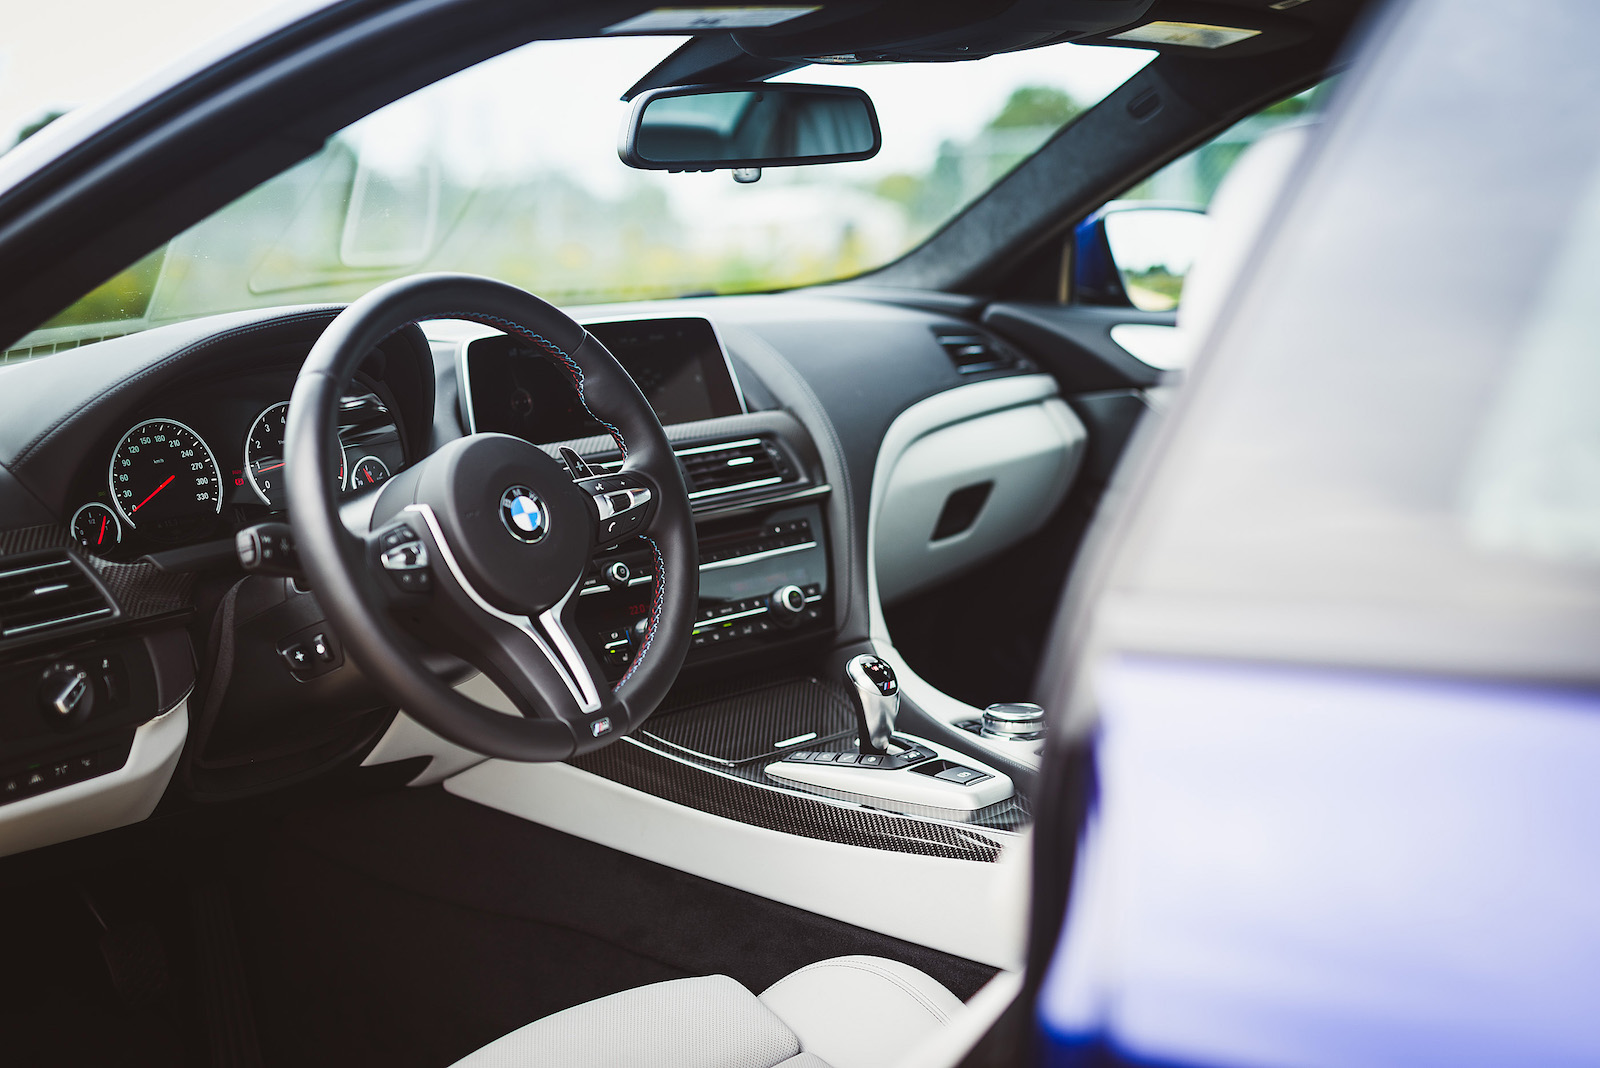 ... Coupe Series Bmw M6 Interior : Review: 2016 BMW M6 Coupe | Canadian  Auto Review ...